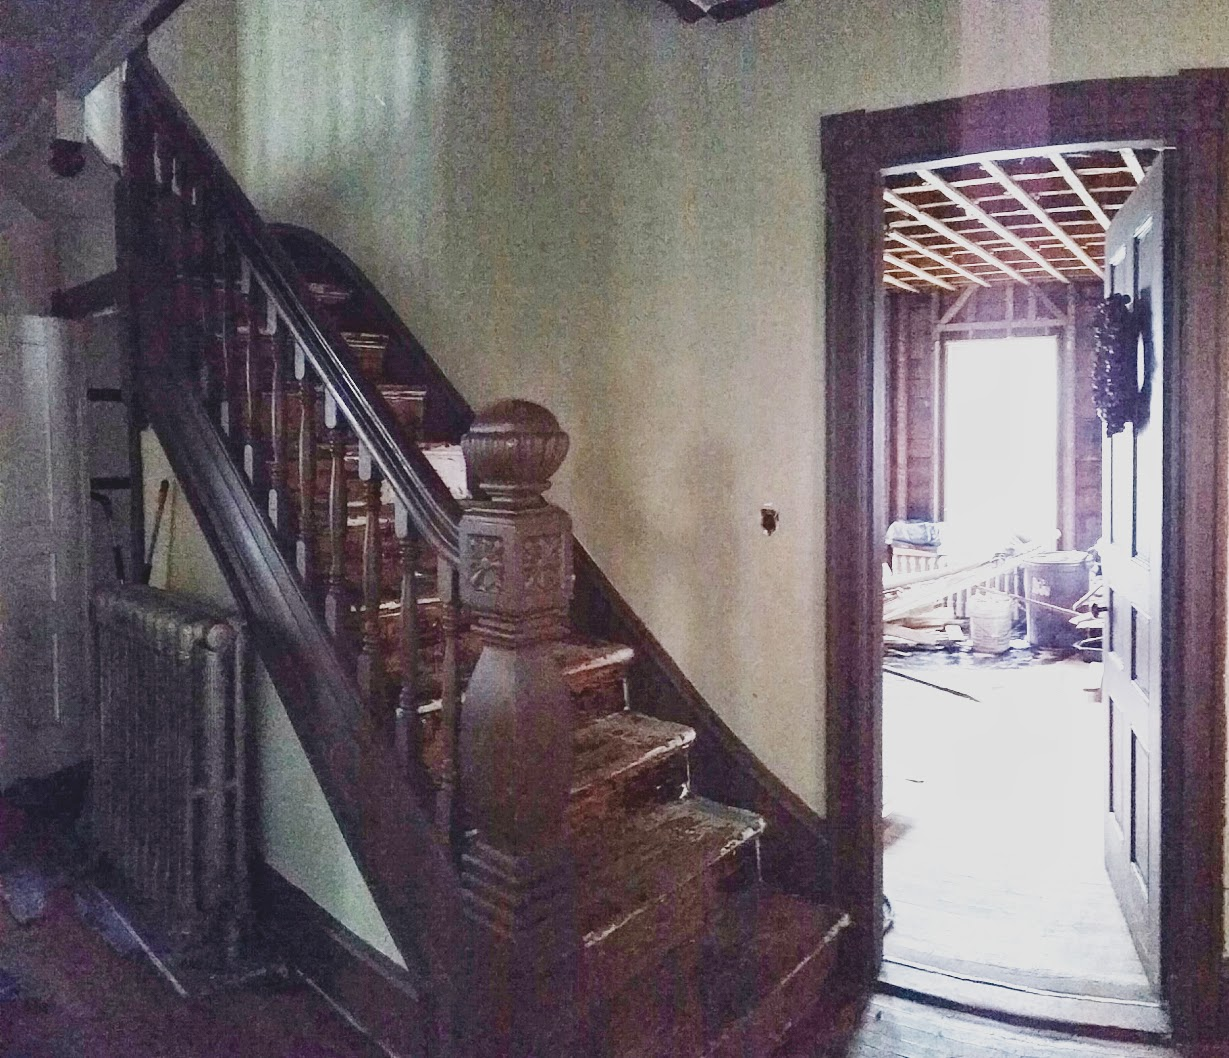 Antique Staircase <a href='http://susanwhitehead.masspropertyvalues.com/index.php?types[]=1&types[]=2&areas[]=city:New Bedford&beds=0&baths=0&min=0&max=100000000&map=0&sortby=listings.listingdate DESC&quick=1&submit=Search' title='Search Properties in New Bedford'>New Bedford</a> MA